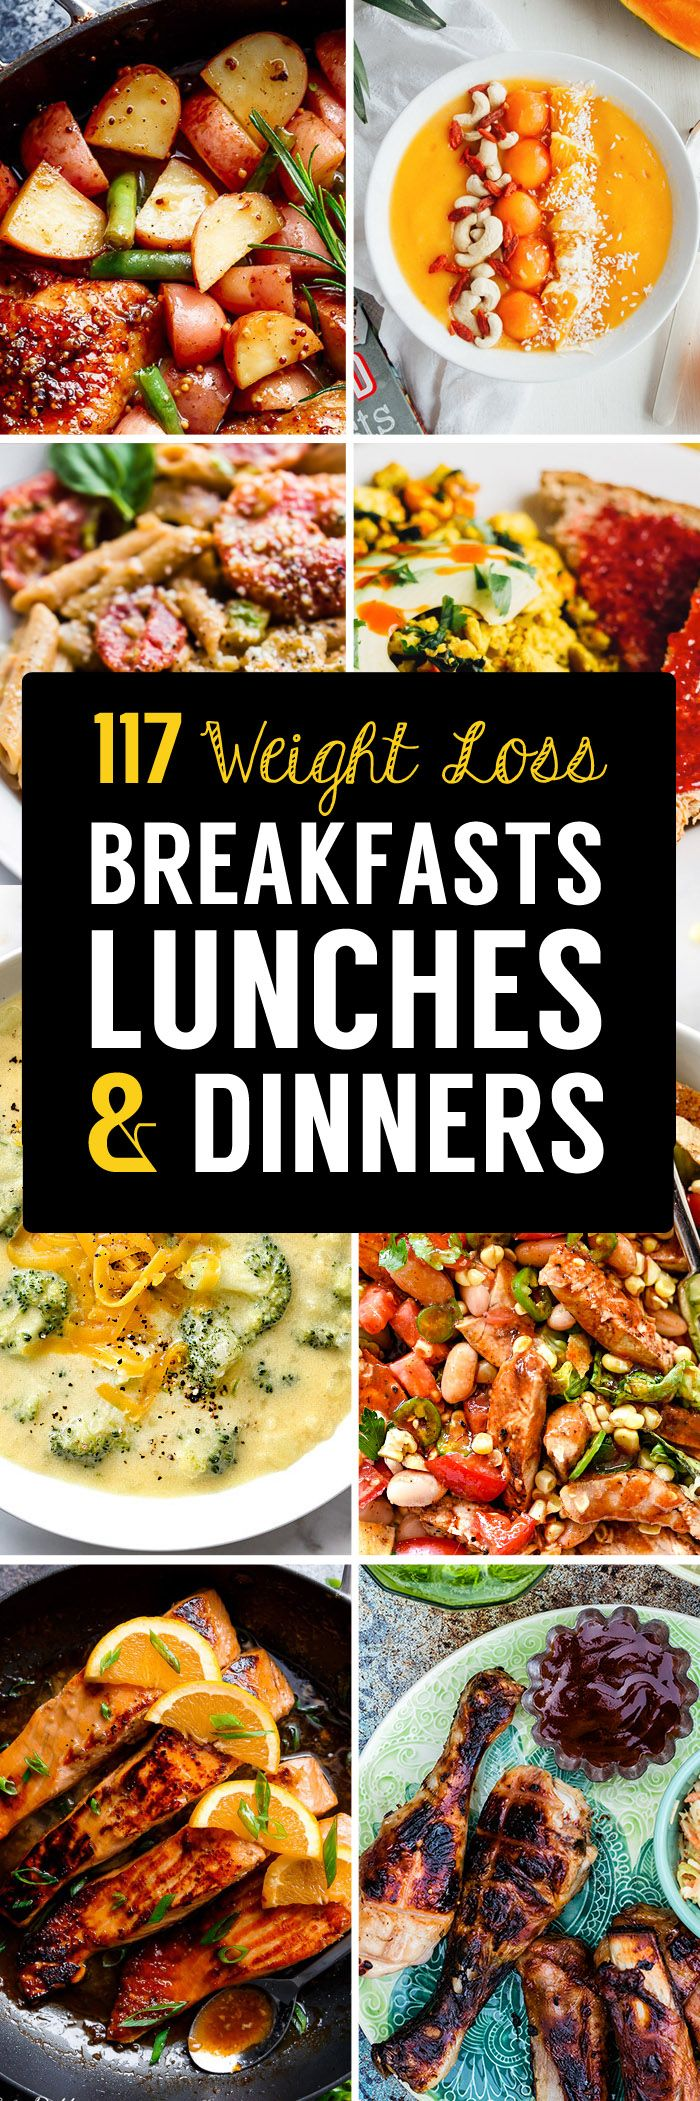 117 weight loss meal recipes for every time of the day pinterest if youre looking for healthy weight loss meals then weve got your covered whether you need a healthy balanced breakfast to start your day a delicious forumfinder Gallery